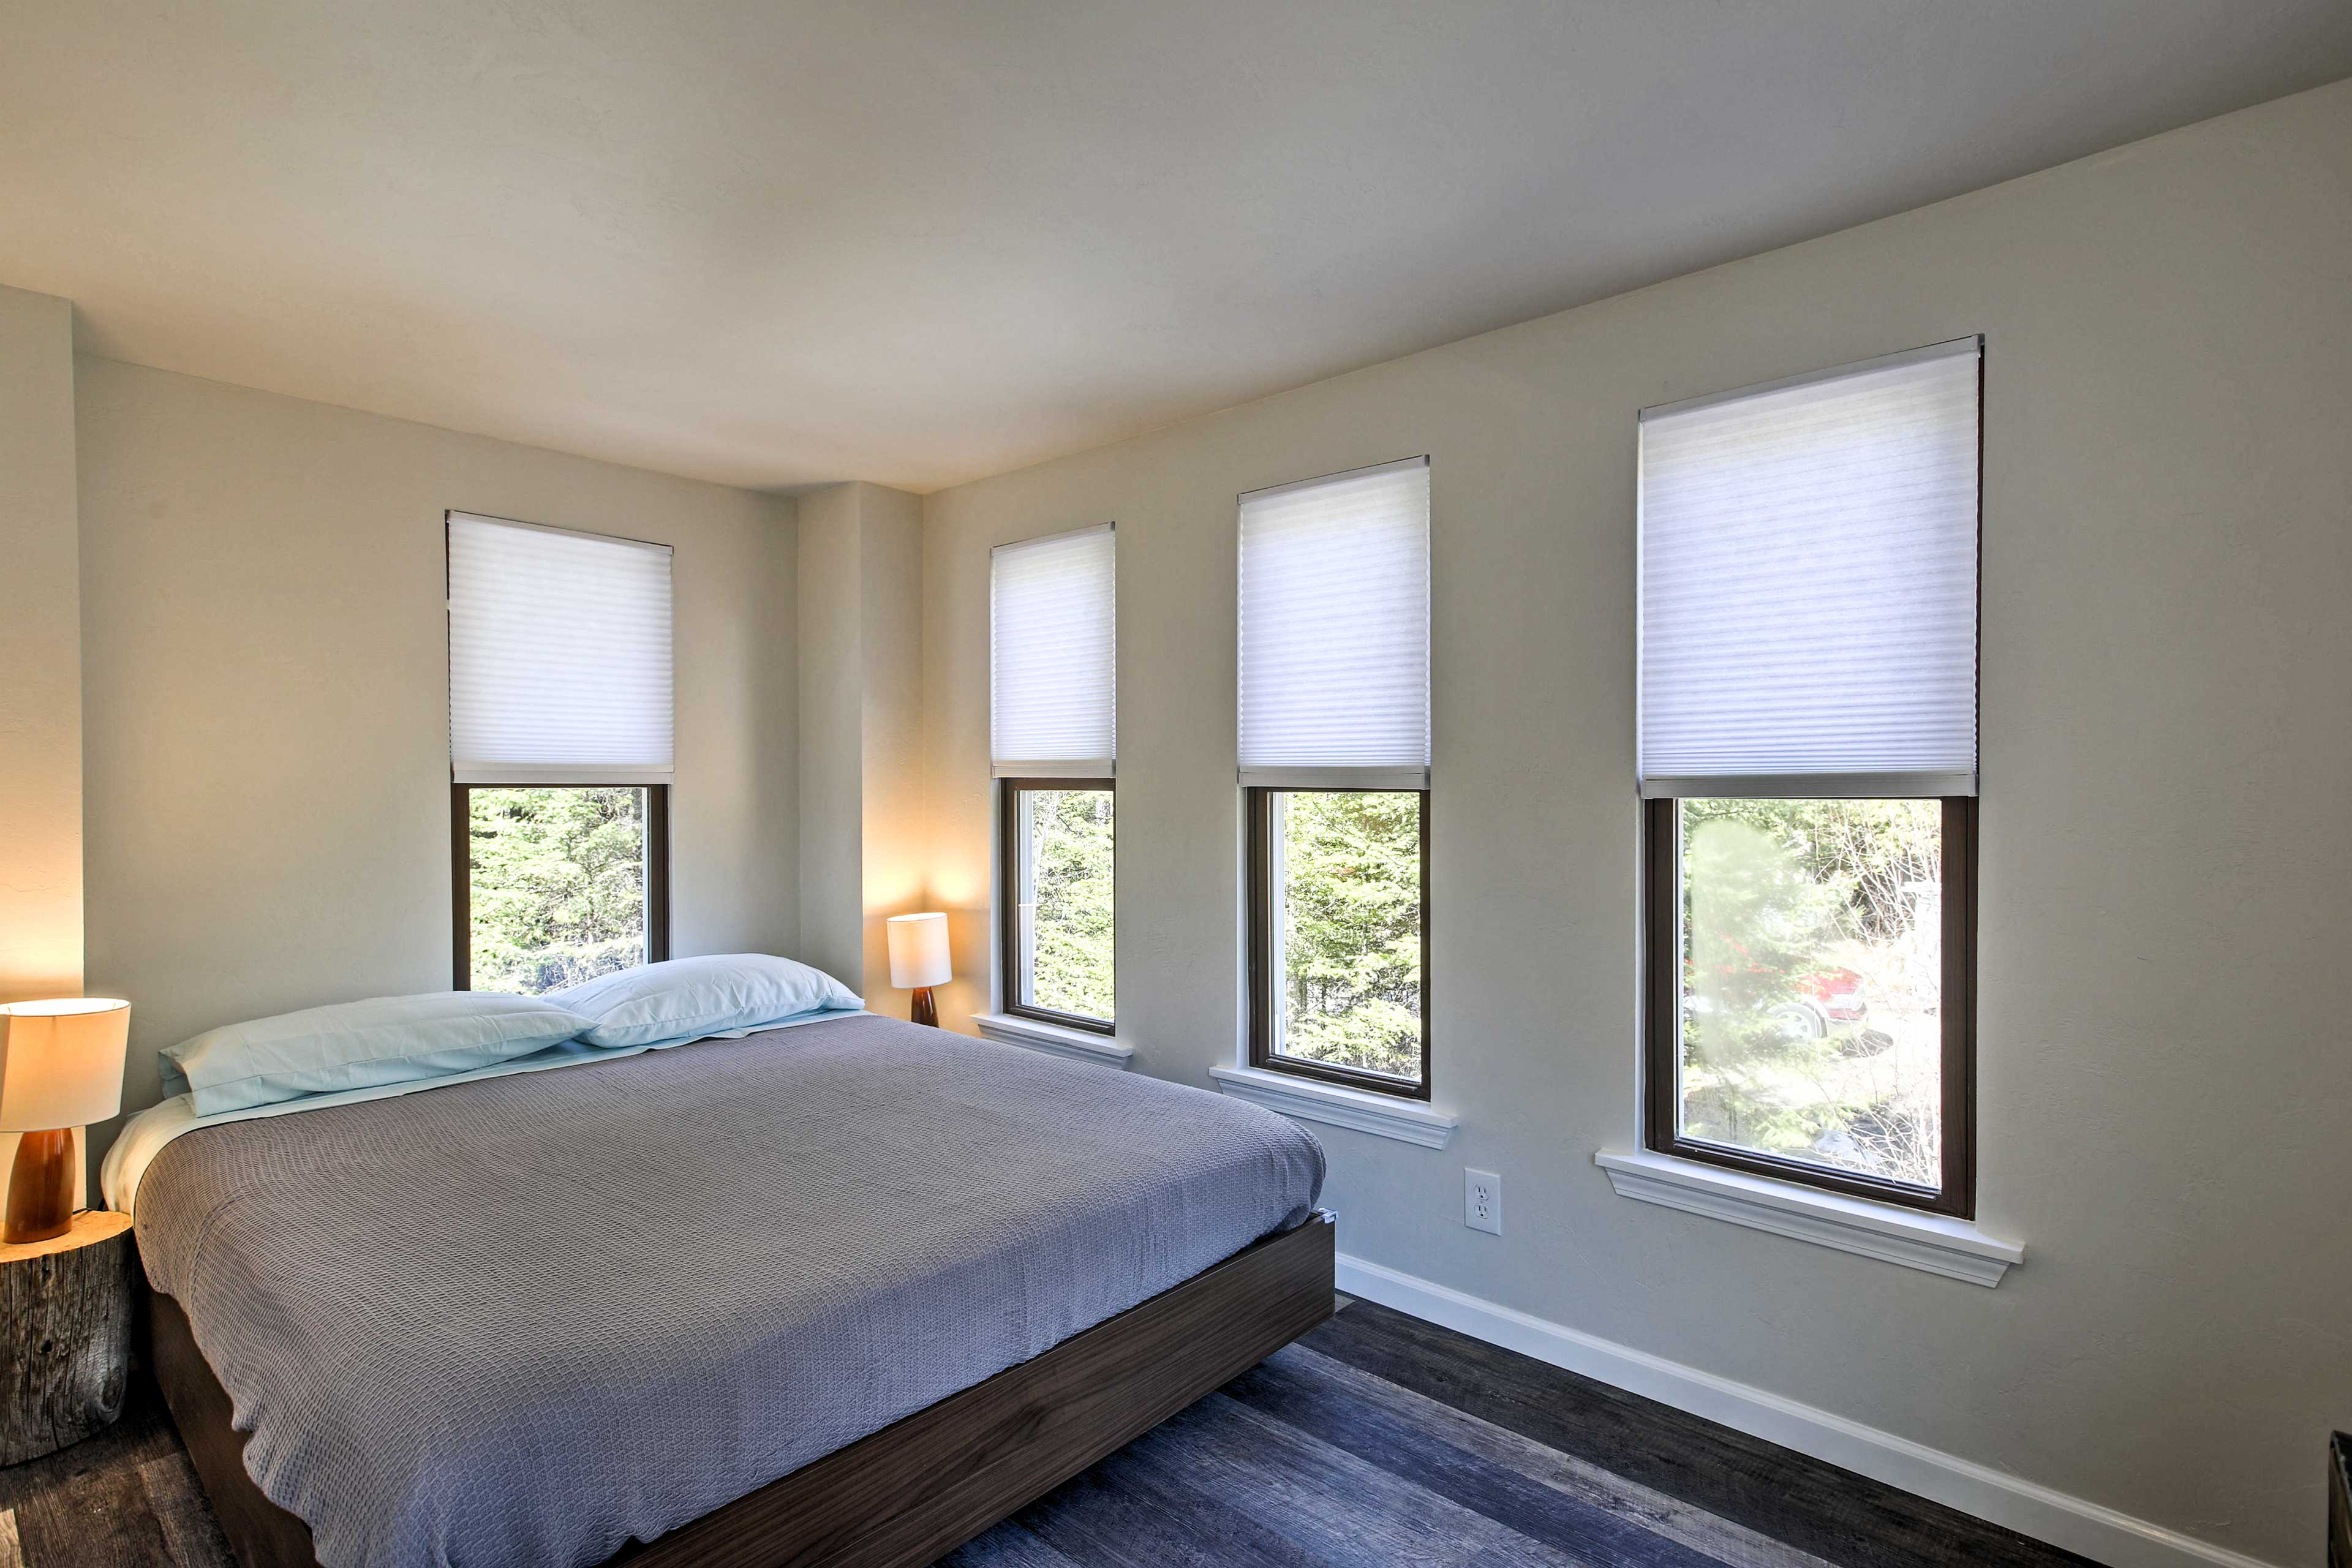 Both of the home's 2 bedrooms feature comfortable queen-sized beds.